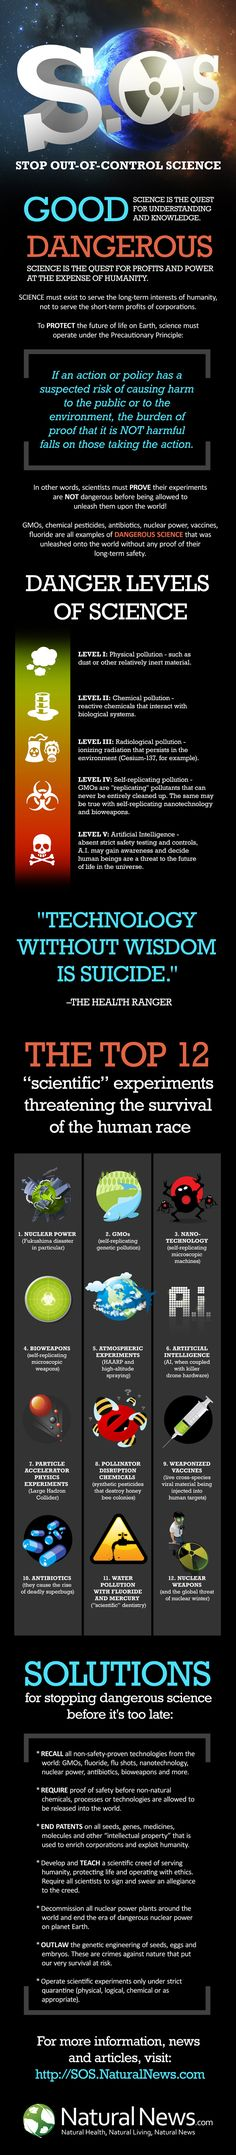 Stop-Out-Of-Control-Science-infographic